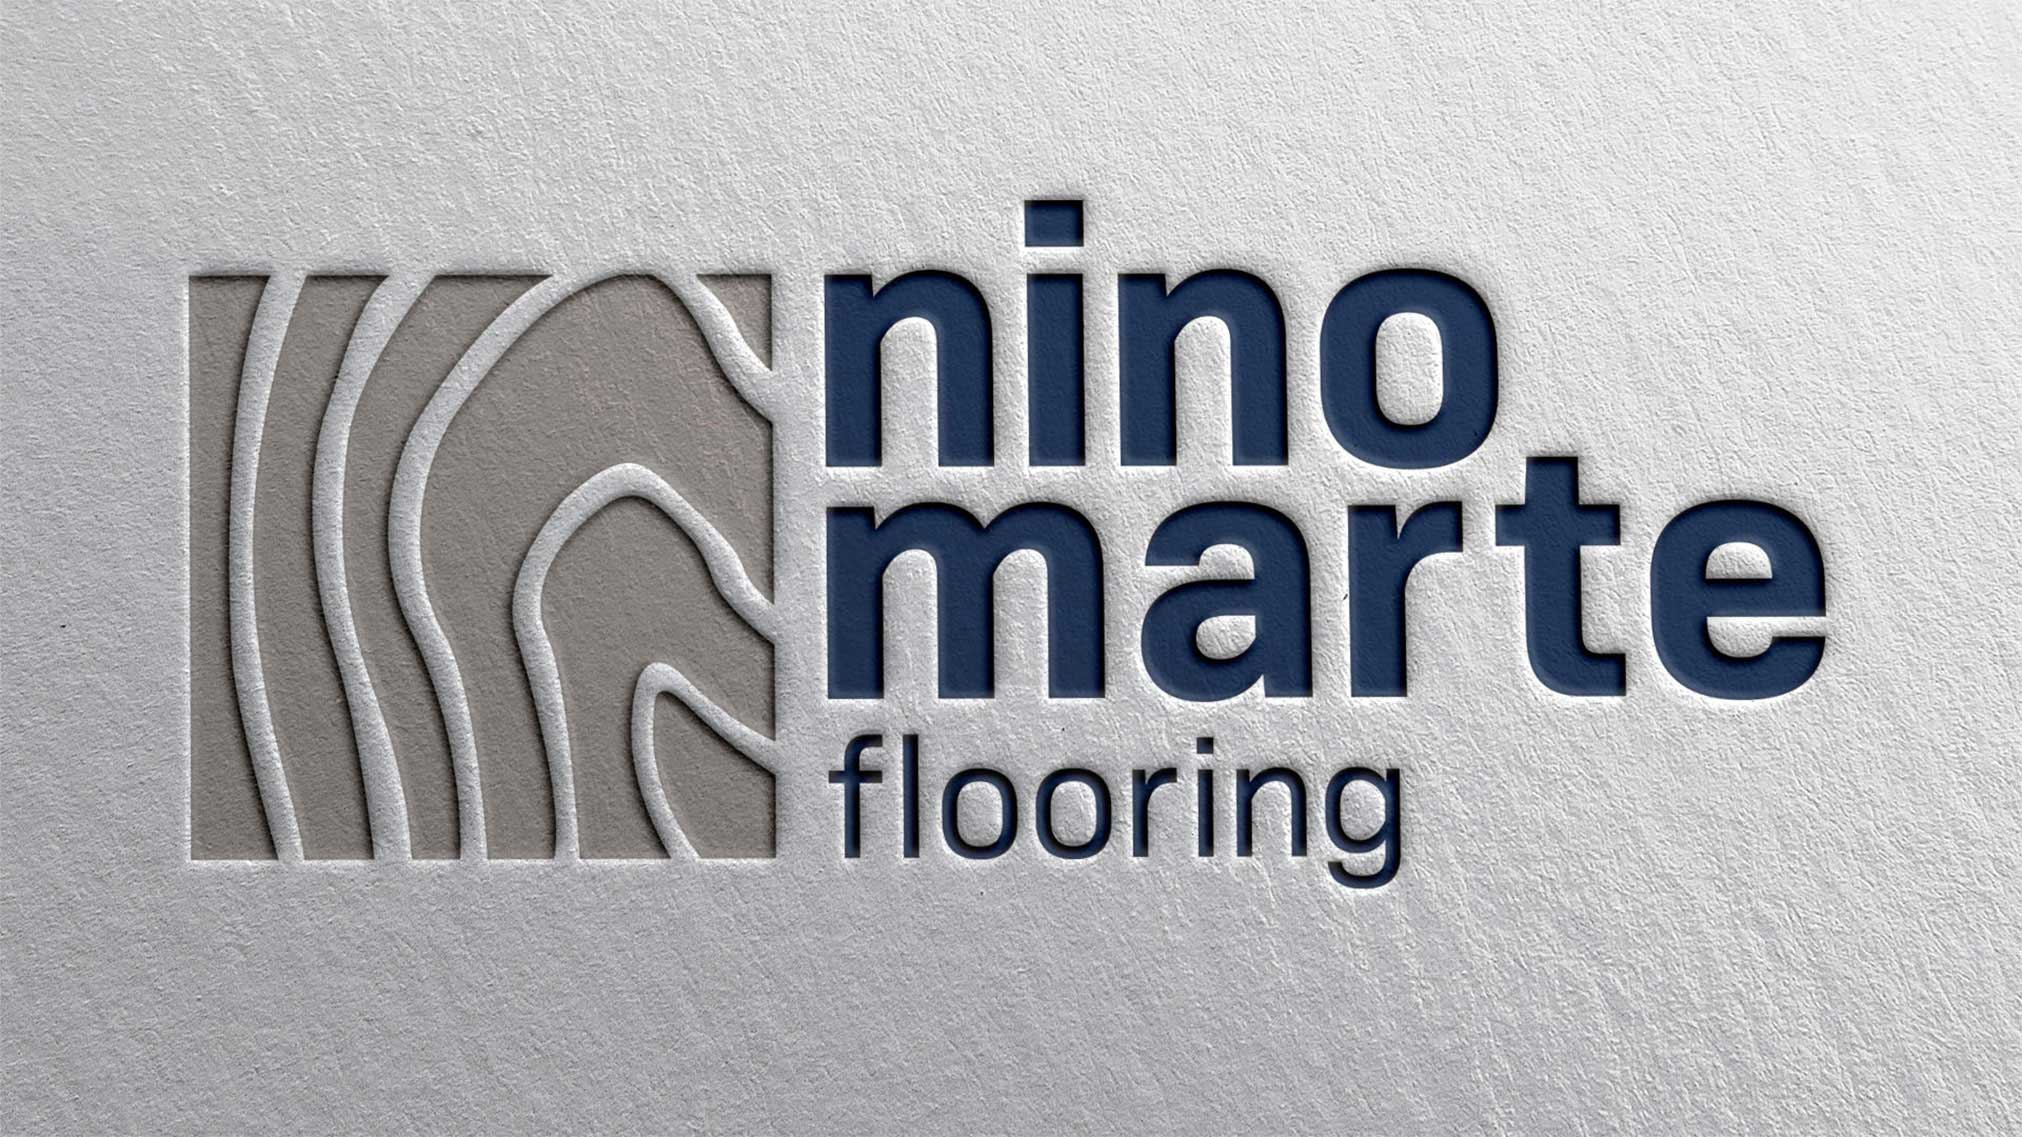 This is a logo redesign made for a local flooring company.